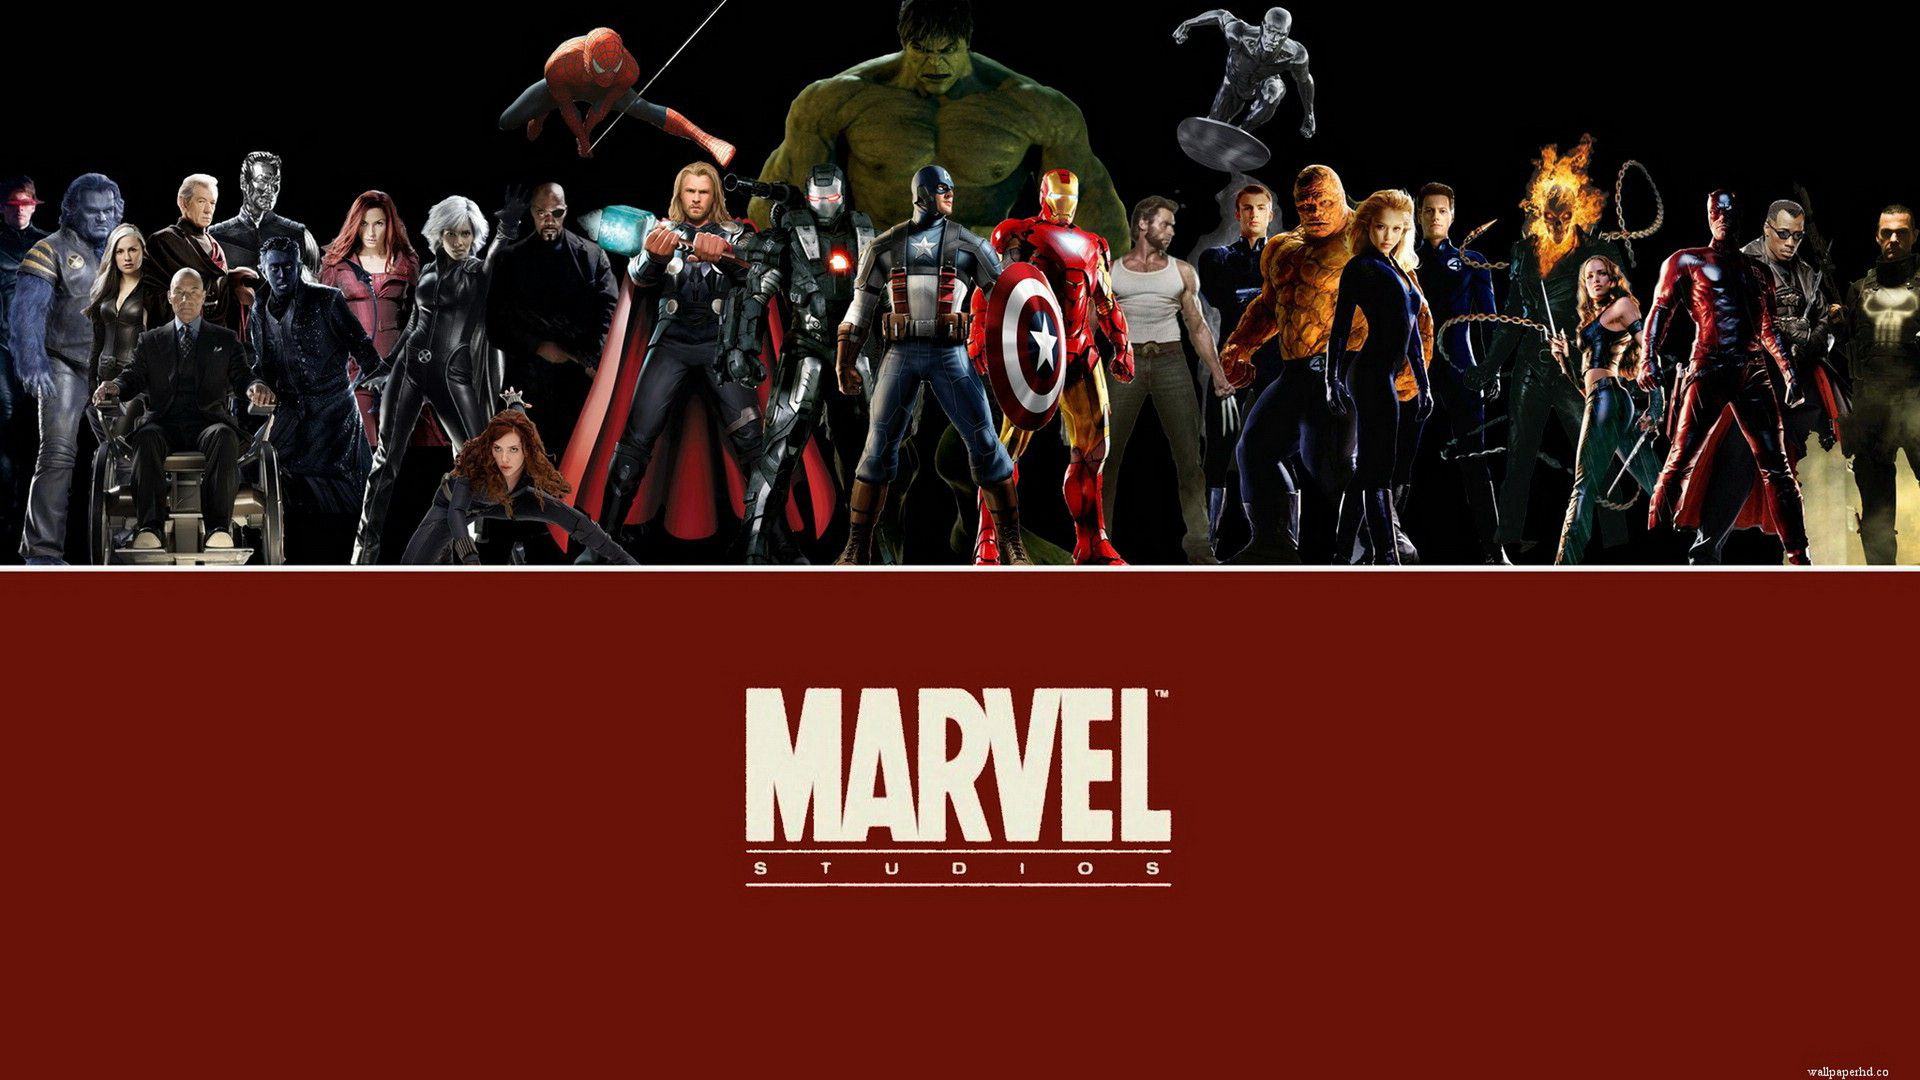 The avengers wallpaper hd - Avengers hd wallpapers free download ...